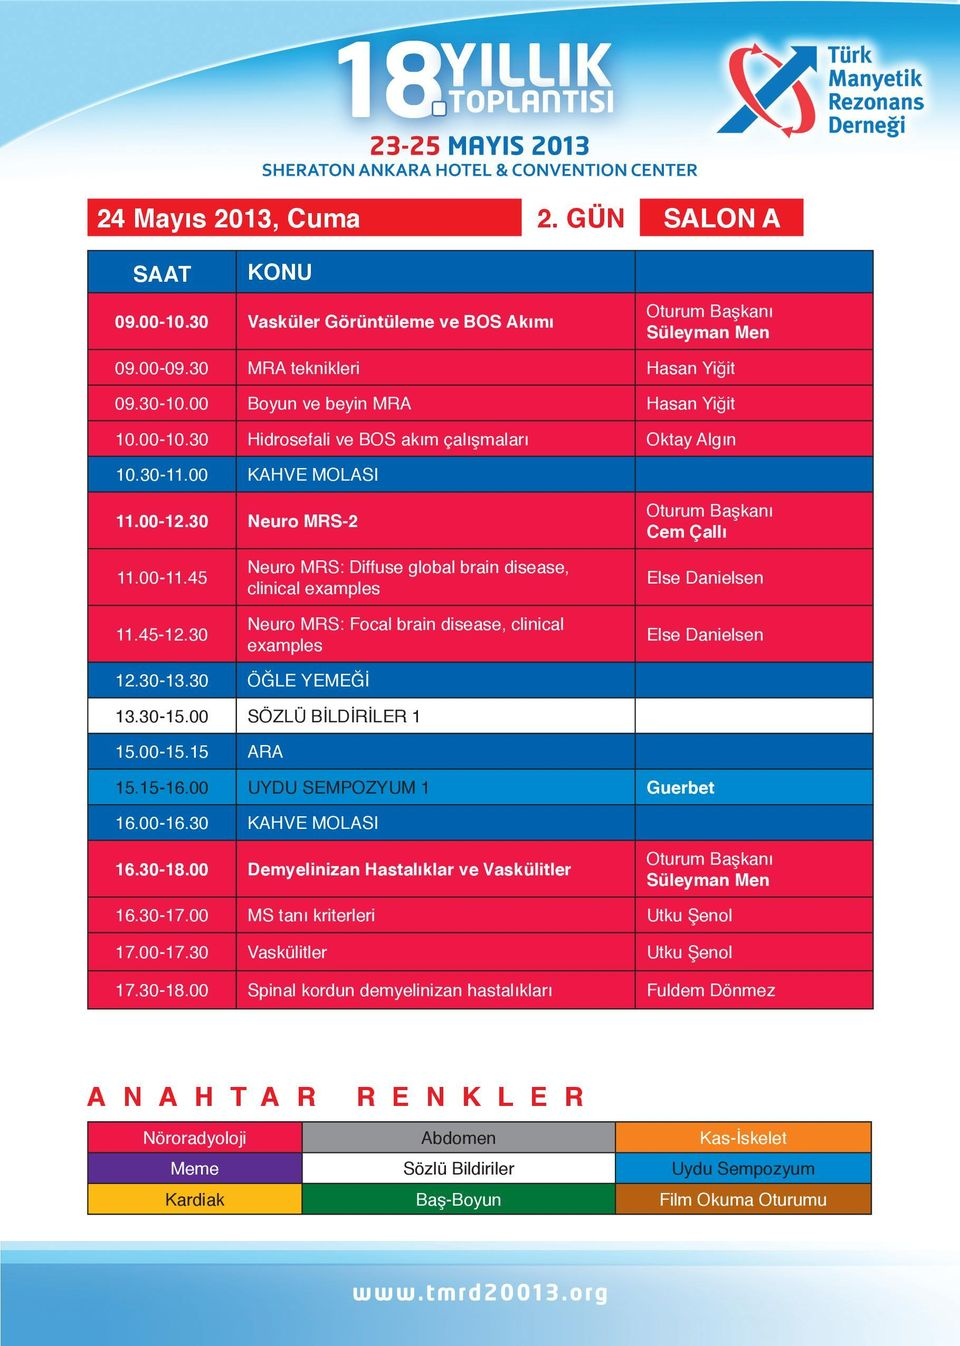 30 Neuro MRS: Diffuse global brain disease, clinical examples Neuro MRS: Focal brain disease, clinical examples Else Danielsen Else Danielsen 12.30-13.30 ÖĞLE YEMEĞİ 13.30-15.00 SÖZLÜ BİLDİRİLER 1 15.